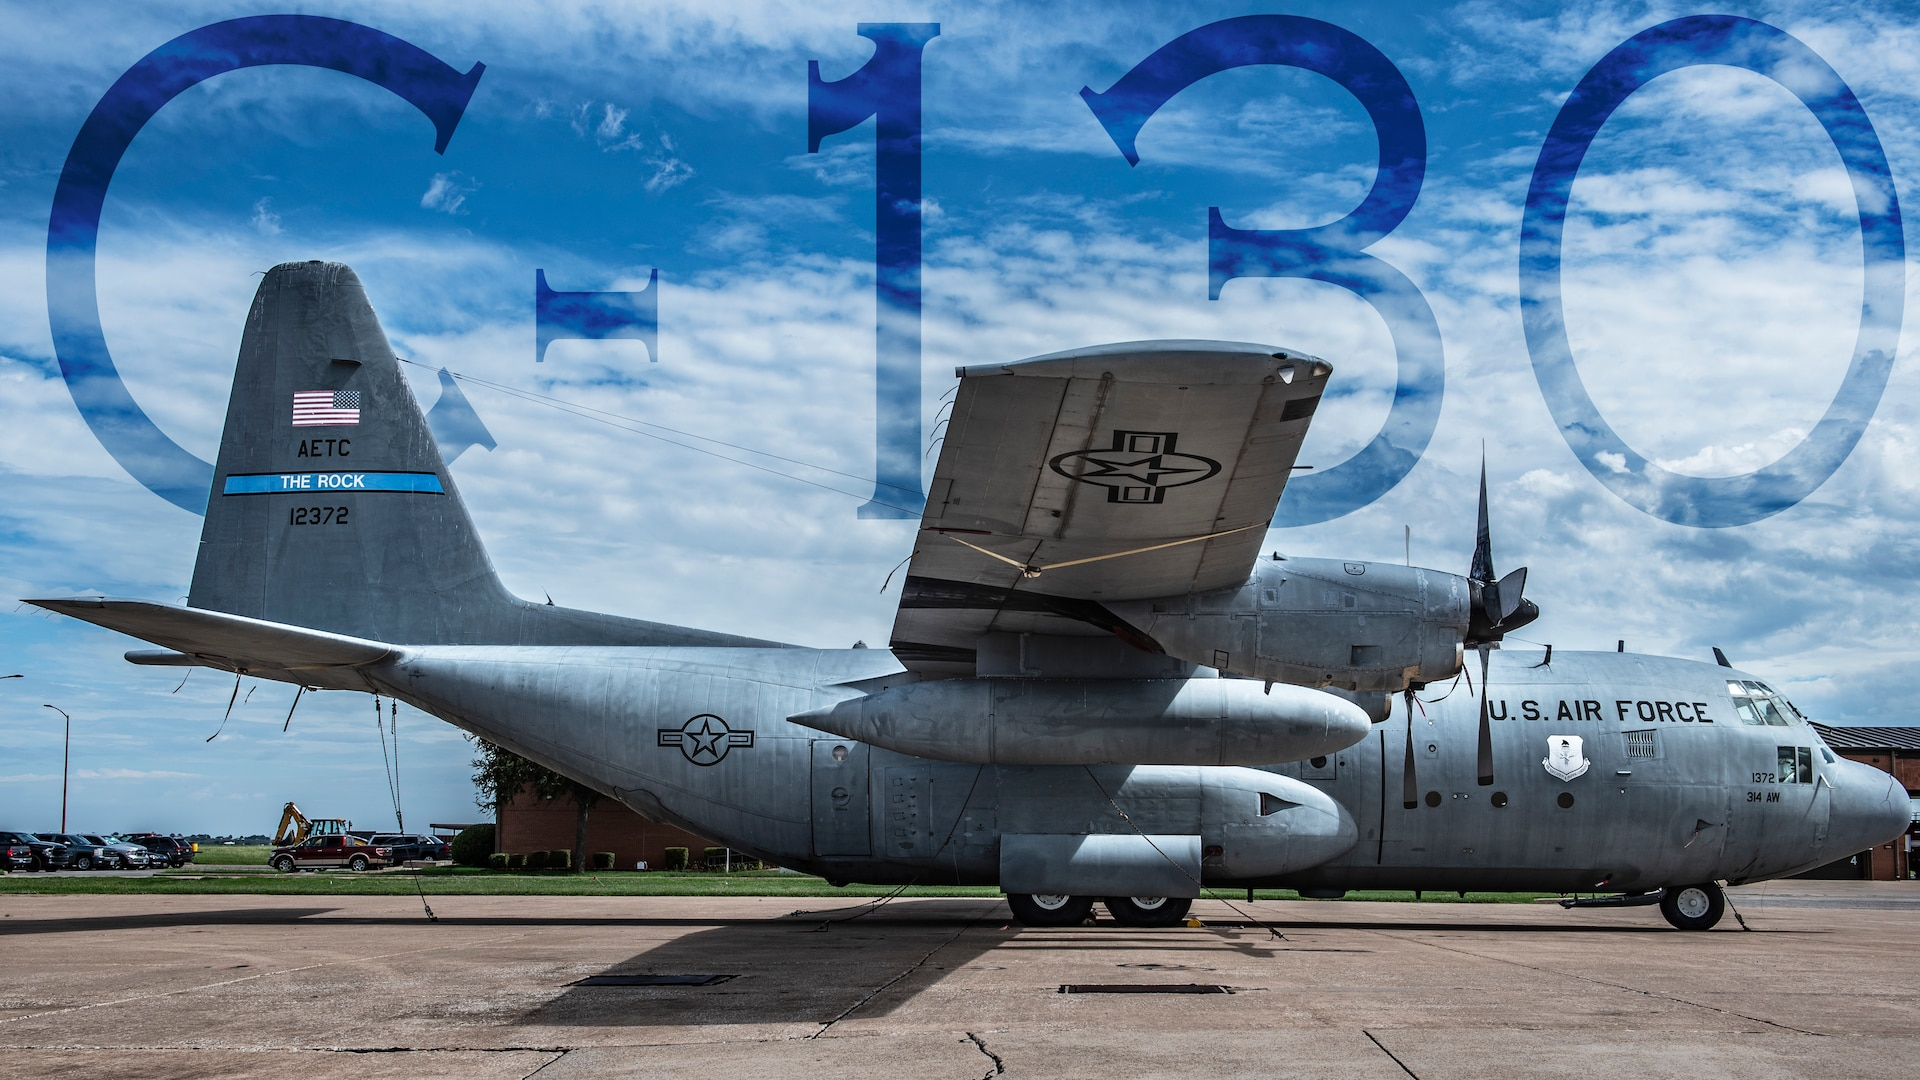 """One of the most reliable and oldest models the United States Air Force uses, the C-130 Hercules is the prime transport for transporting troops and equipment whether it be to hostile areas or friendly territory. The C-130 is an aircraft that can complete diverse missions from humanitarian supply drops to being outfitted into a AC-130 """"Spooky"""" gunship. The C-130 is a great example of flexibility being the key to air power. Read more about the C-130 at https://www.af.mil/About-Us/Fact-Sheets/Display/Article/1555054/c-130-hercules/ (U.S. Air Force illustration by Airman 1st Class Pedro Tenorio)"""